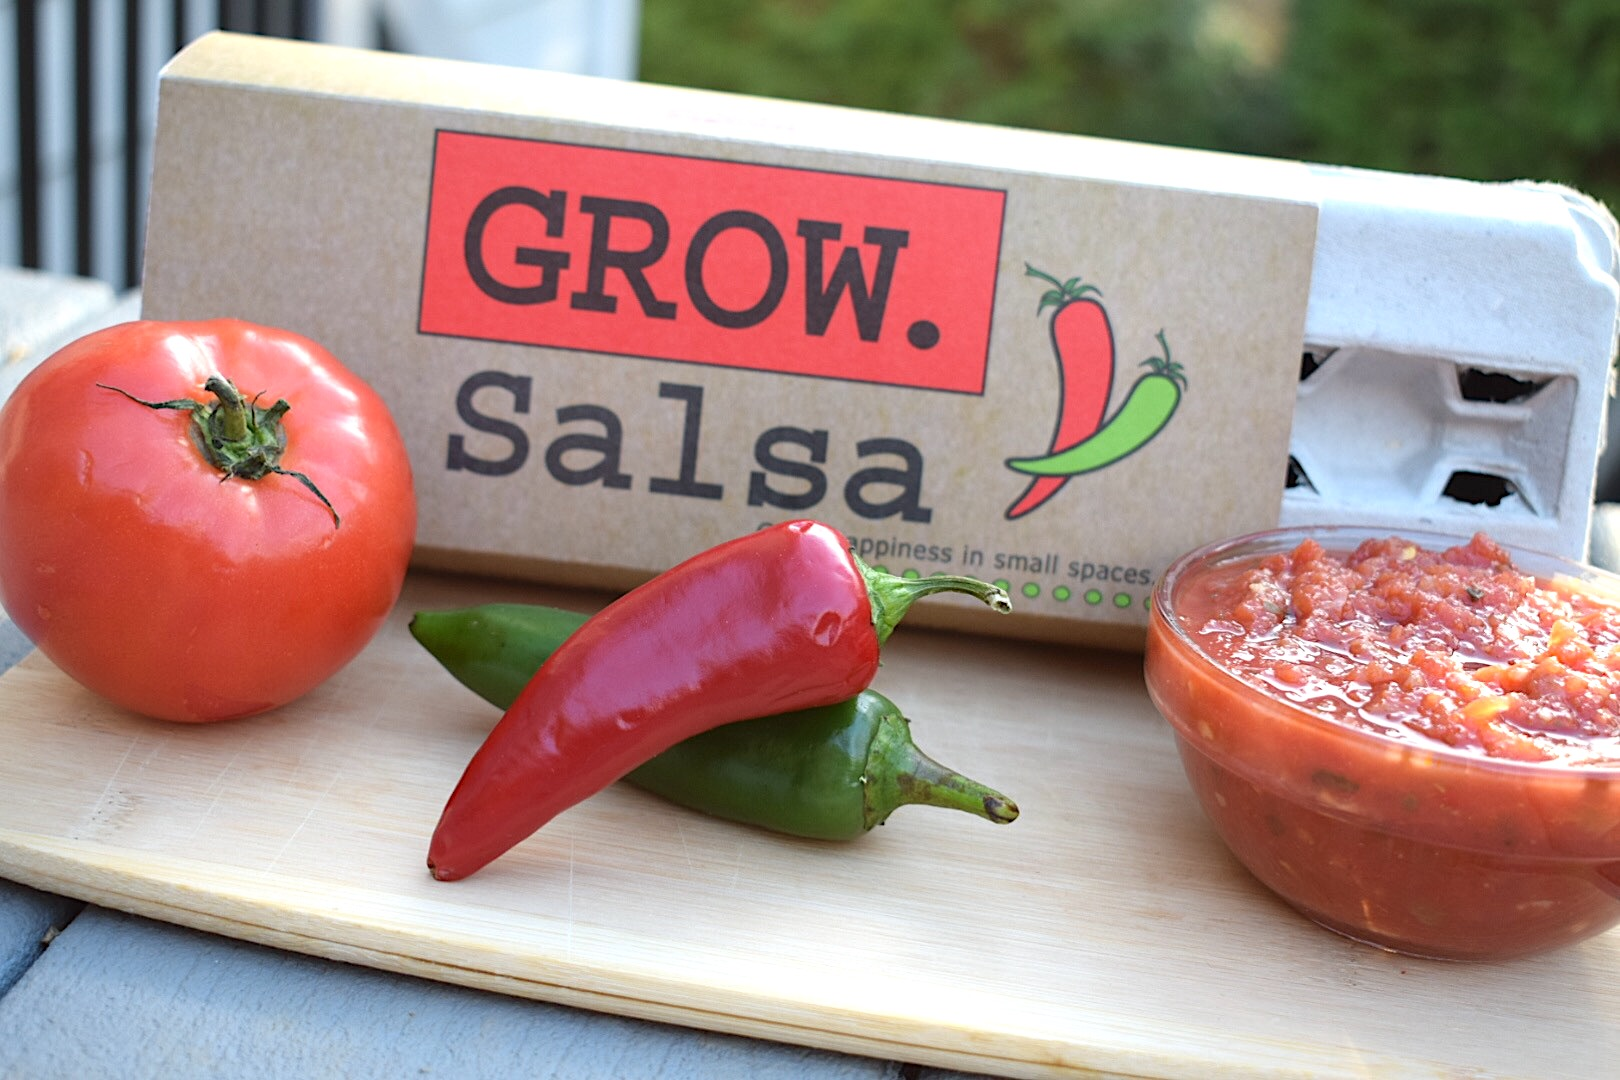 Grow Salsa Egg Carton Garden by Backyard Safari Co